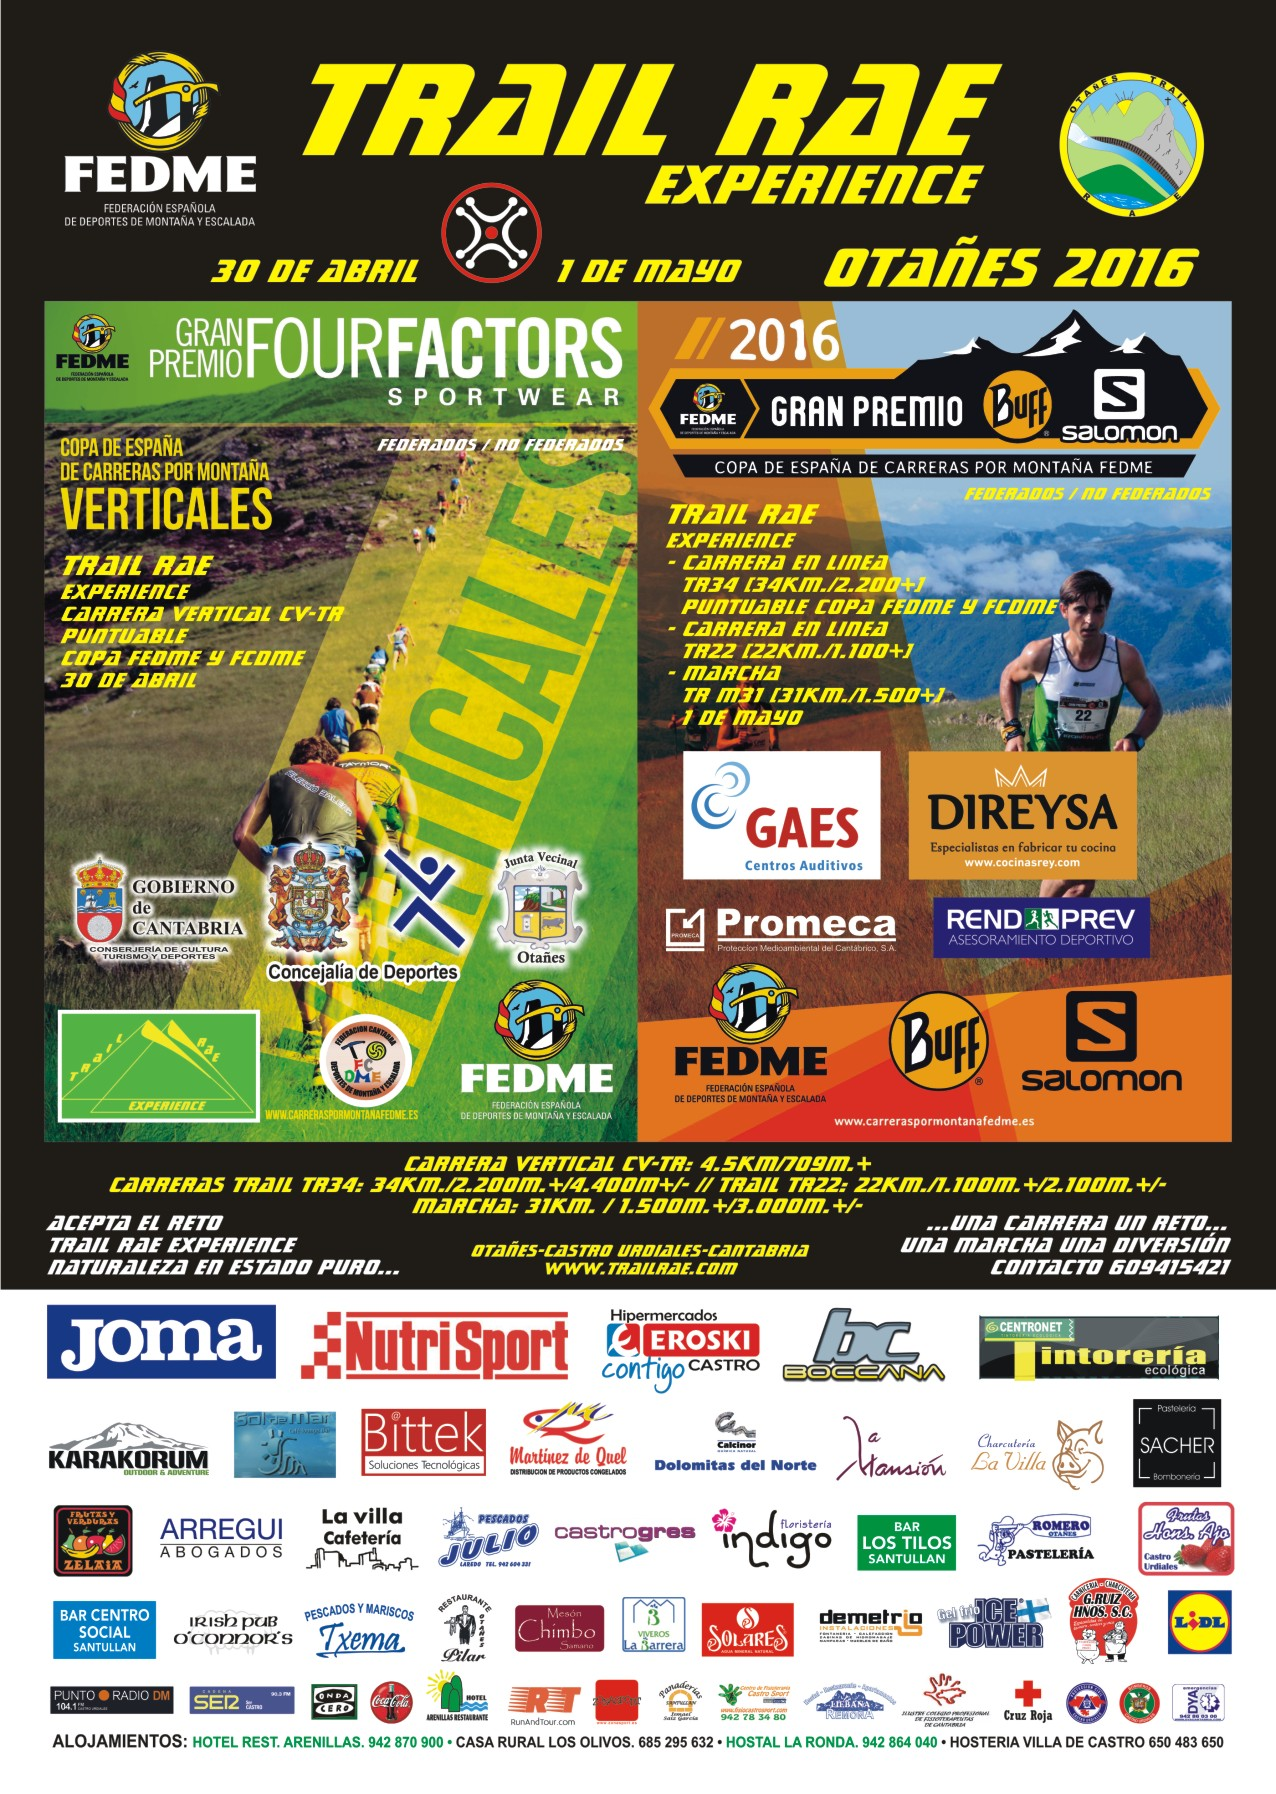 cartel carrera trailrae 2016